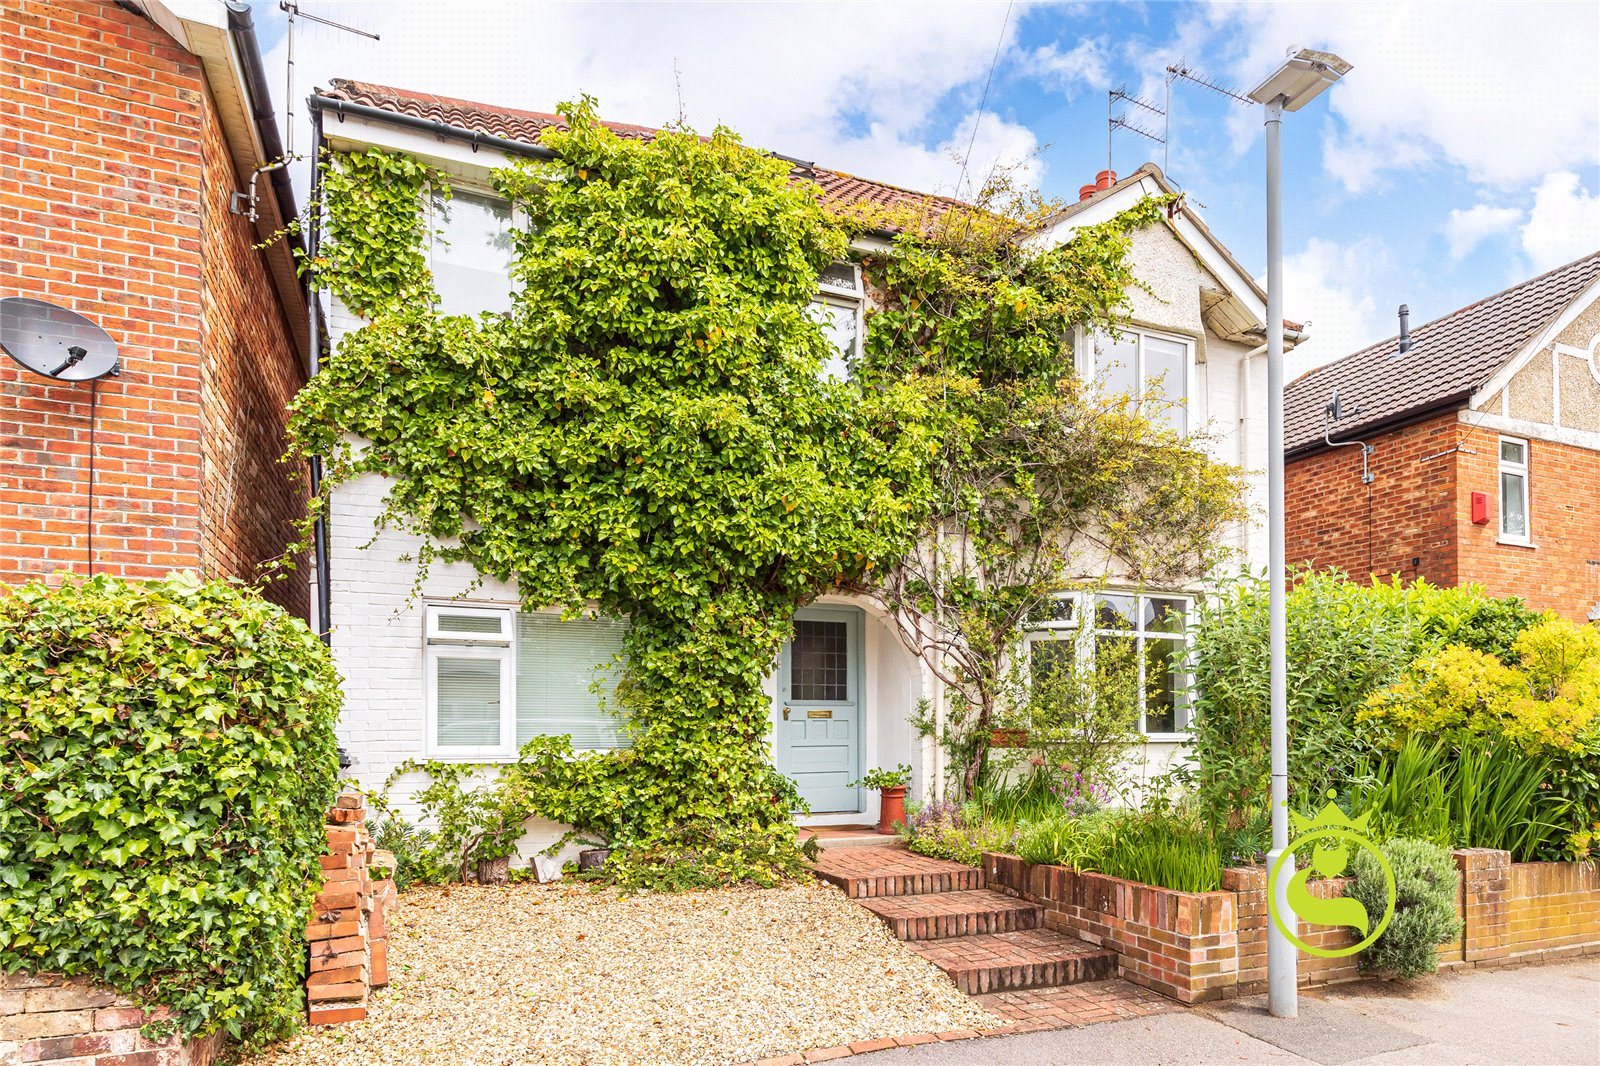 4 bed house for sale in Queens Road, Lower Parkstone, BH14